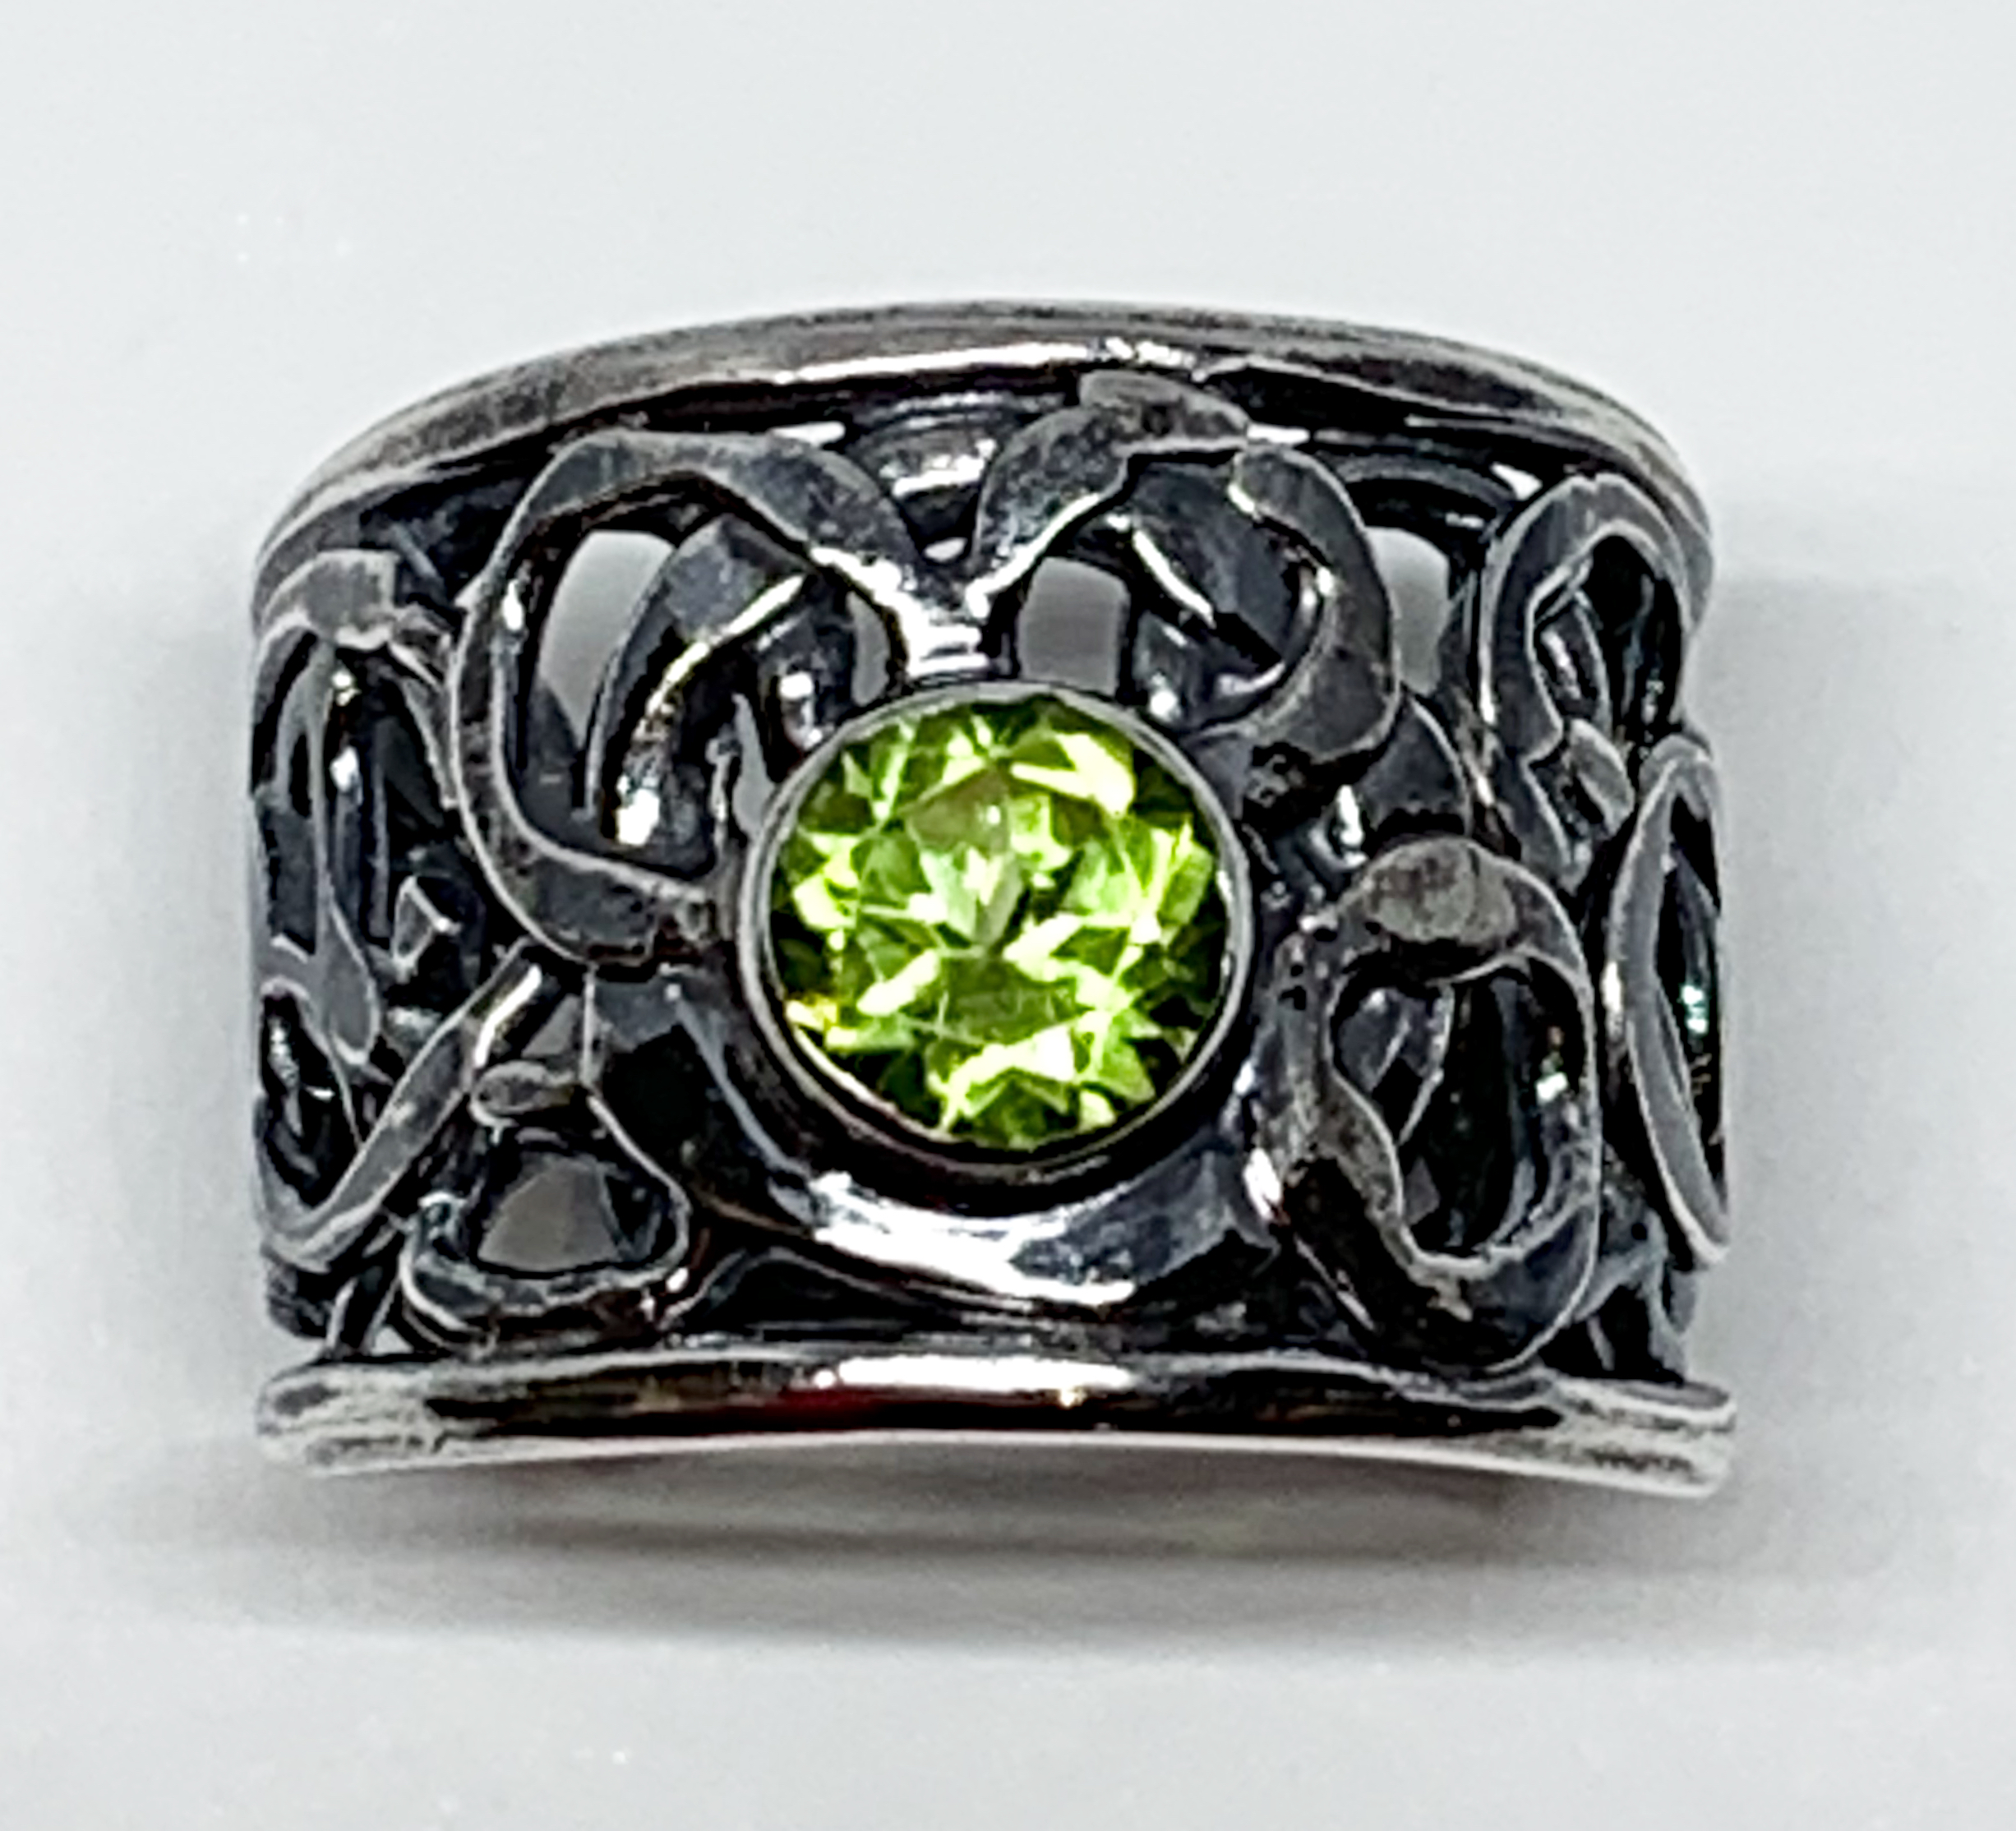 1ct peridot + sterling silver ring by A&R Jewellery   Effusion Art Gallery + Cast Glass Studio, Invermere BC